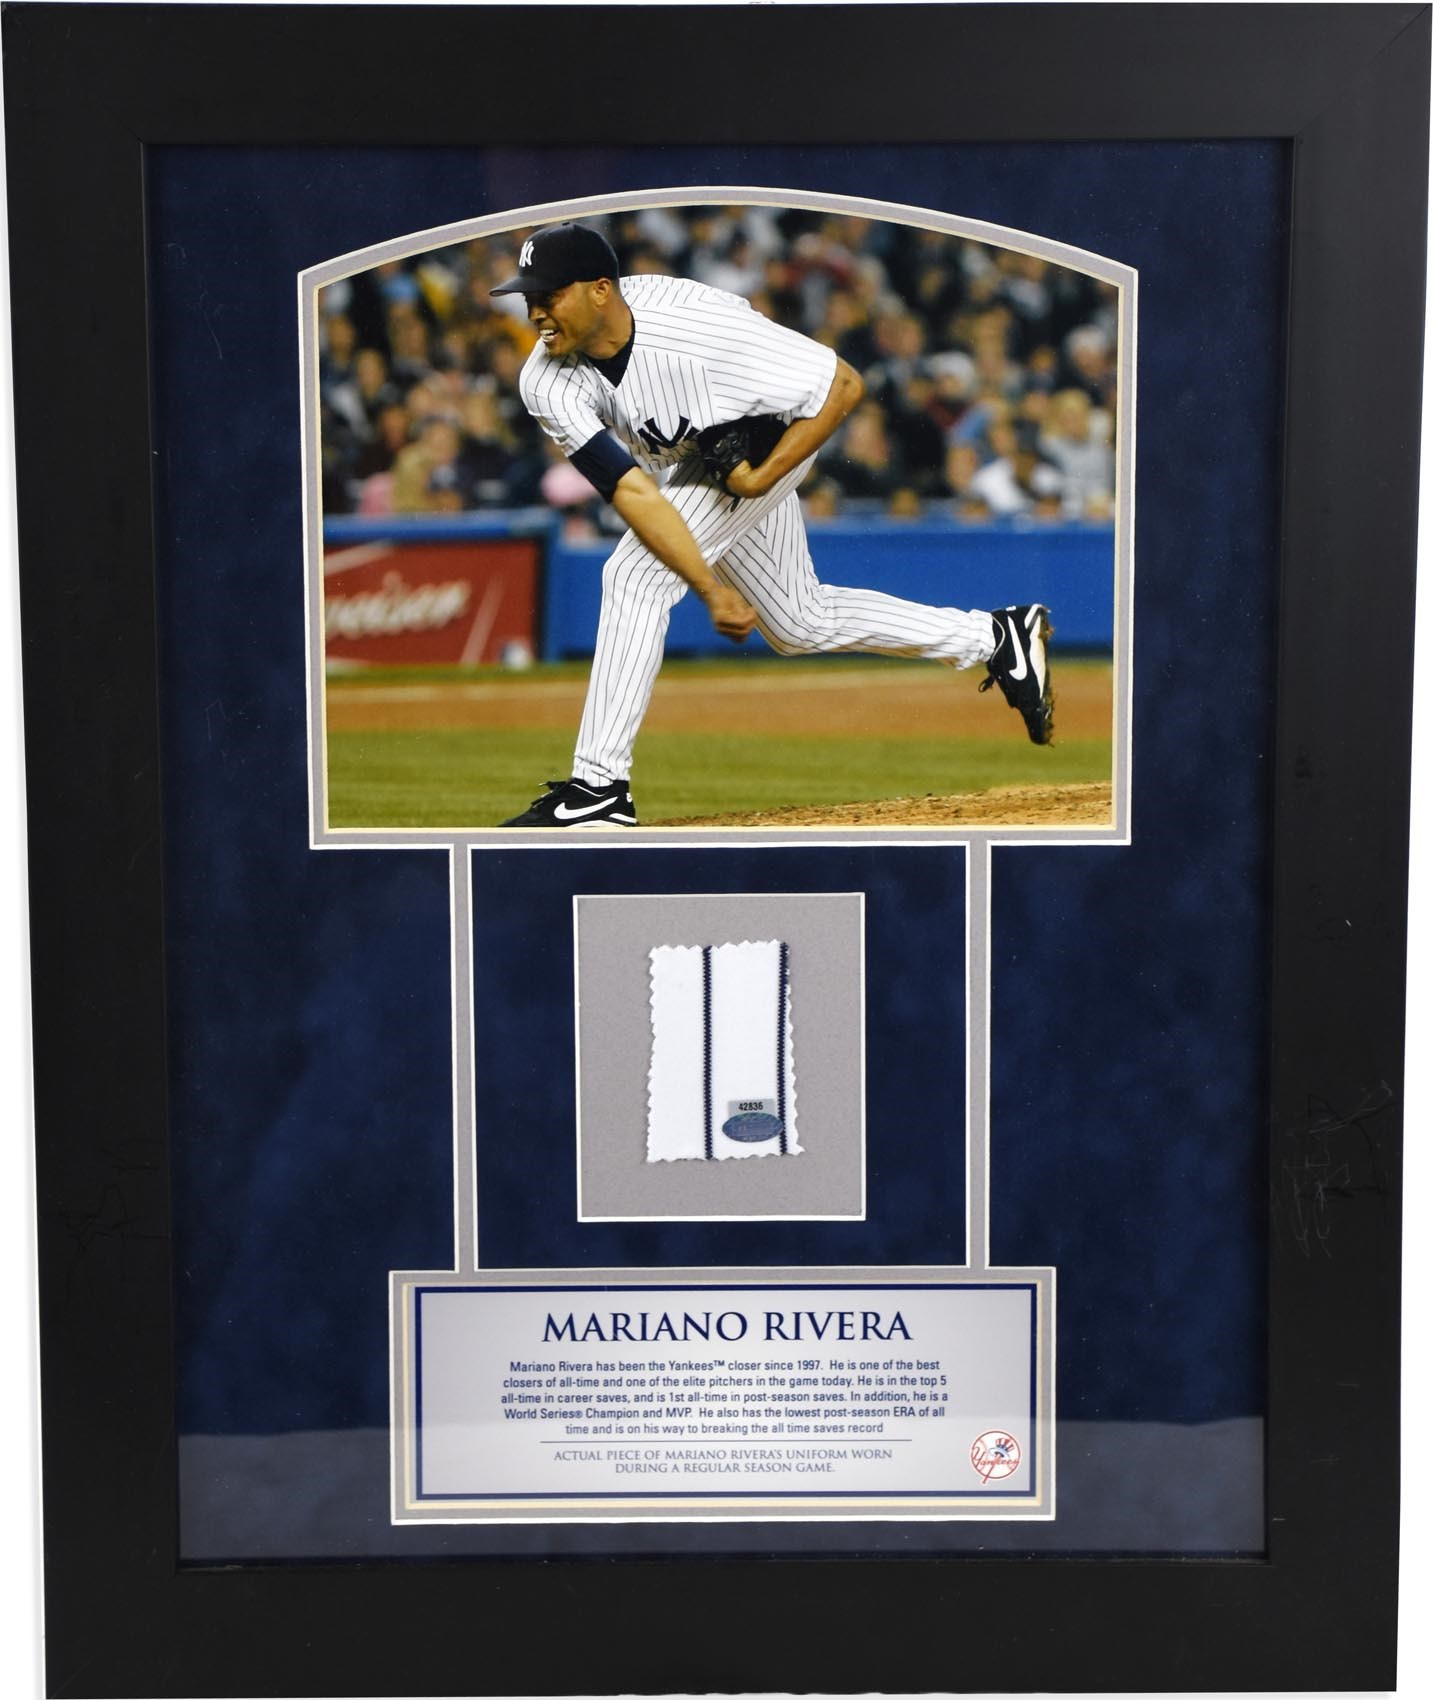 Mariano Rivera Signed Memorabilia Collection